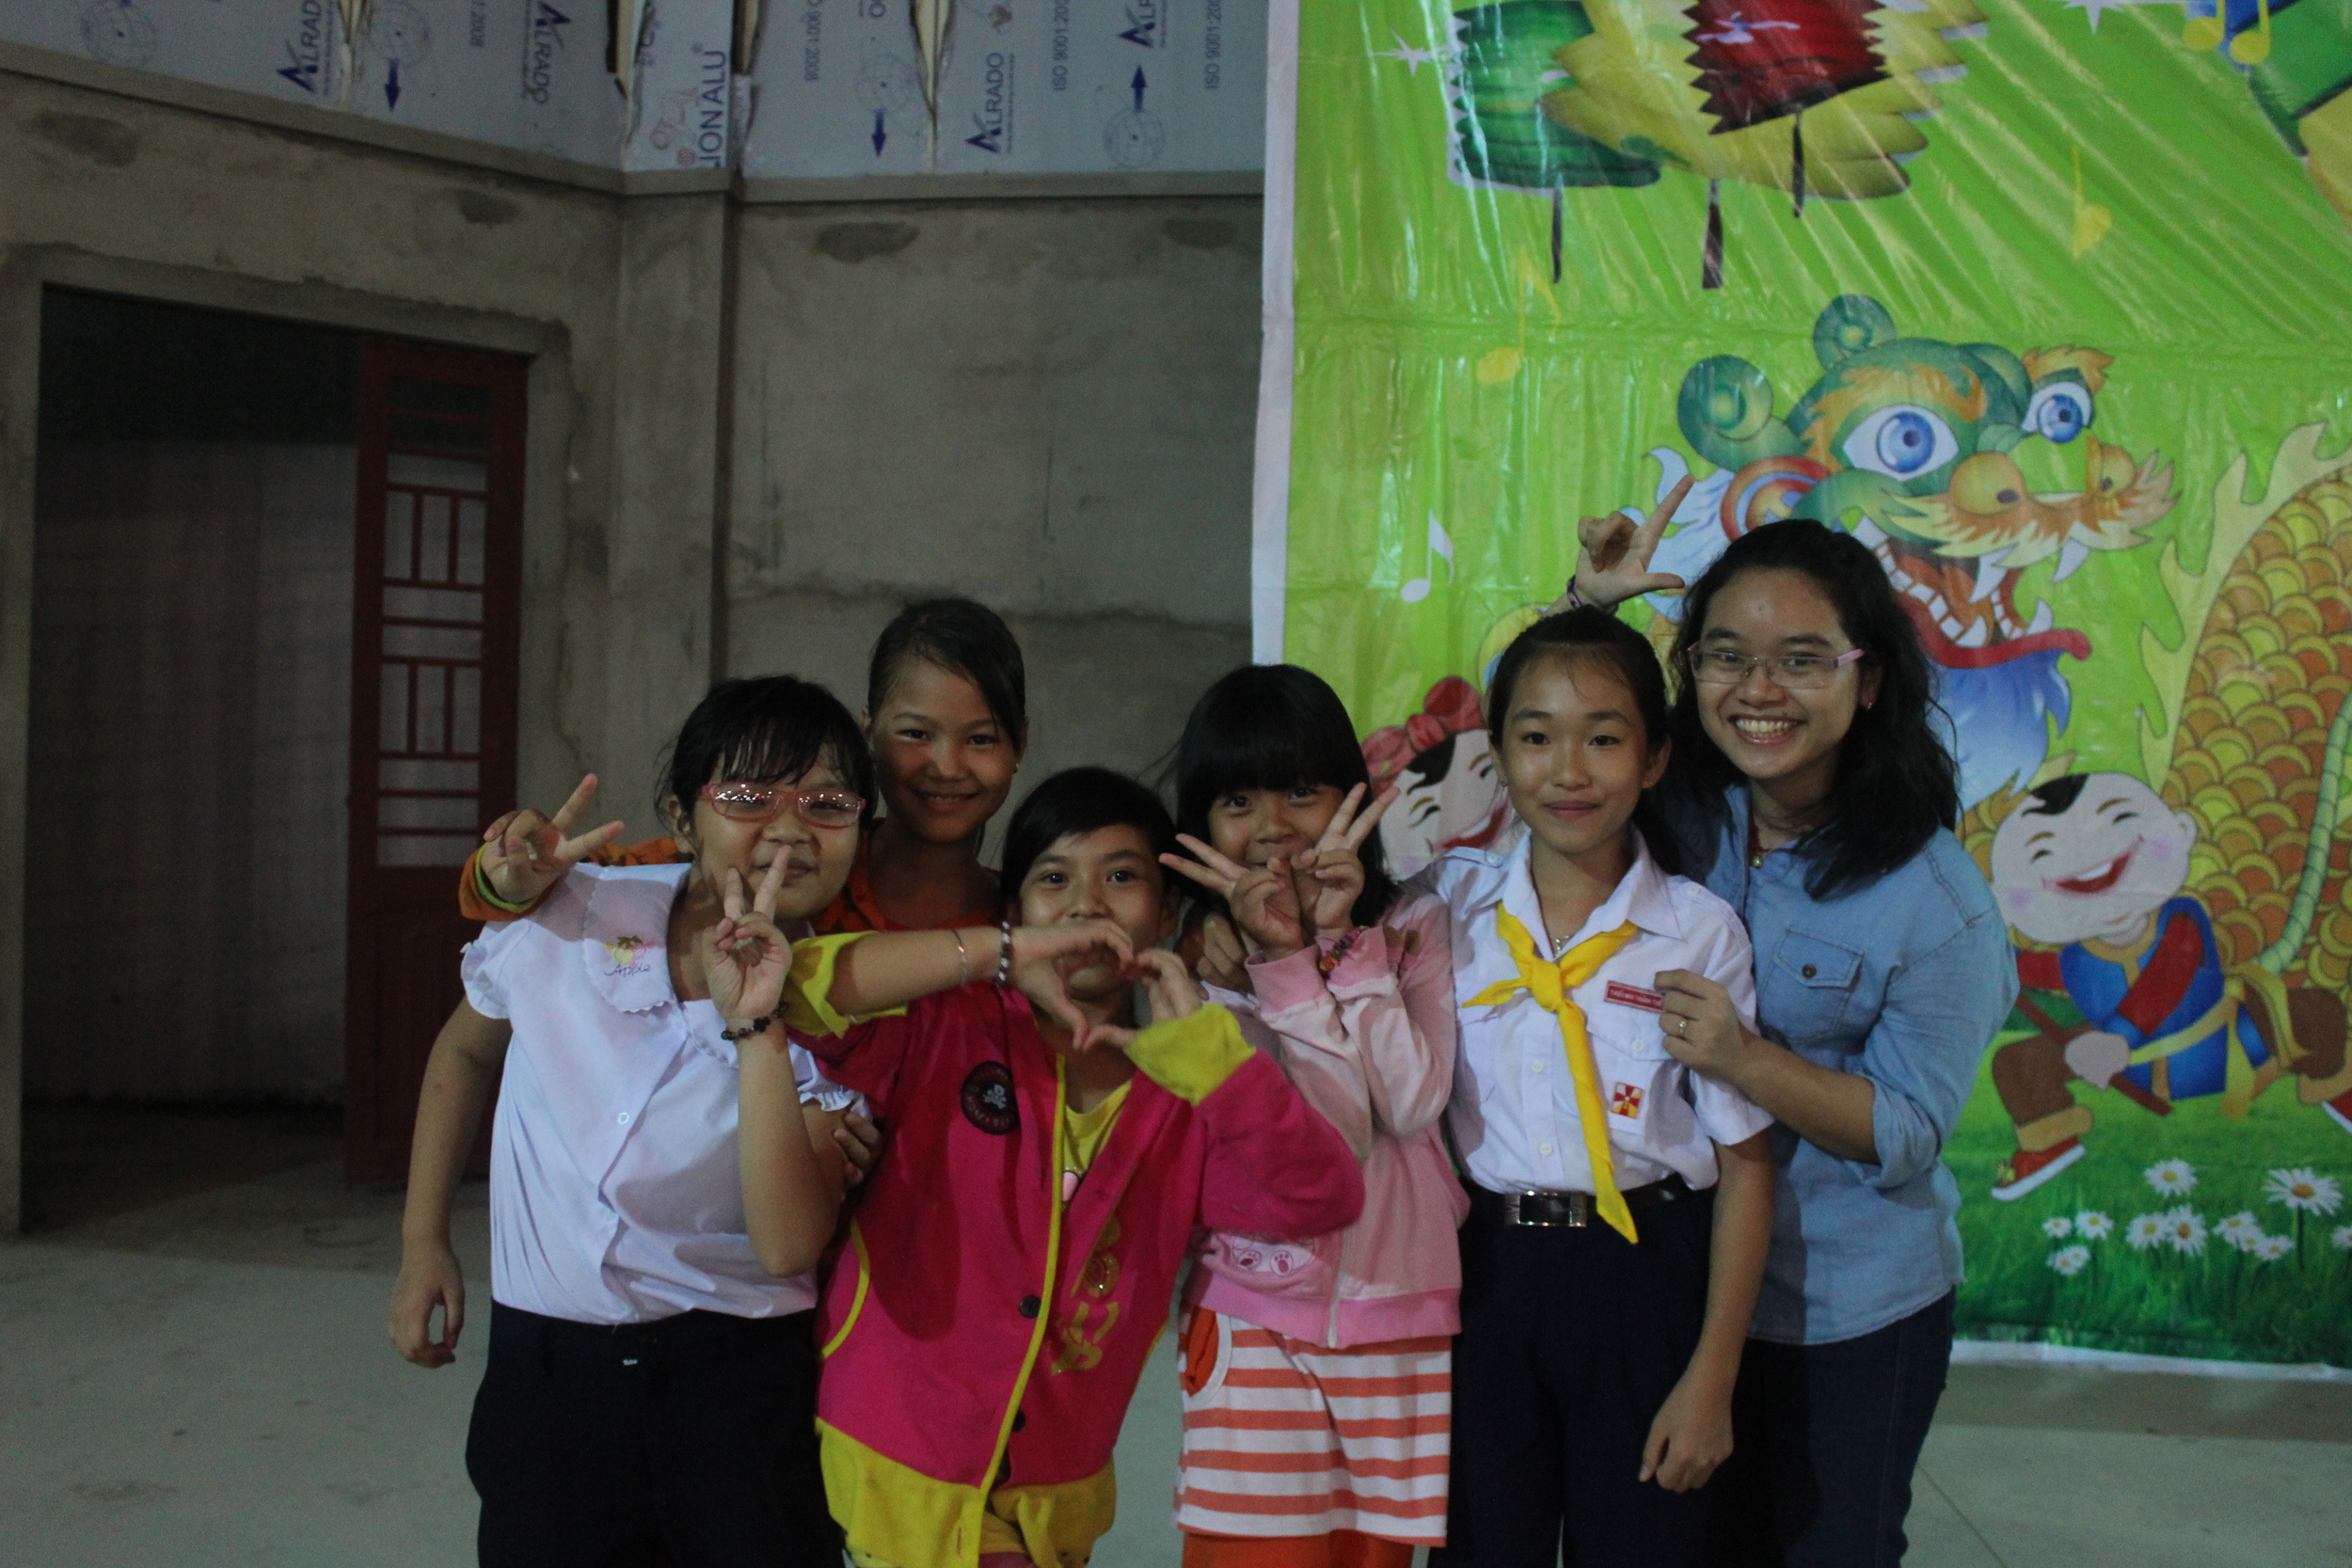 Quynh Lan playing with some of the kids